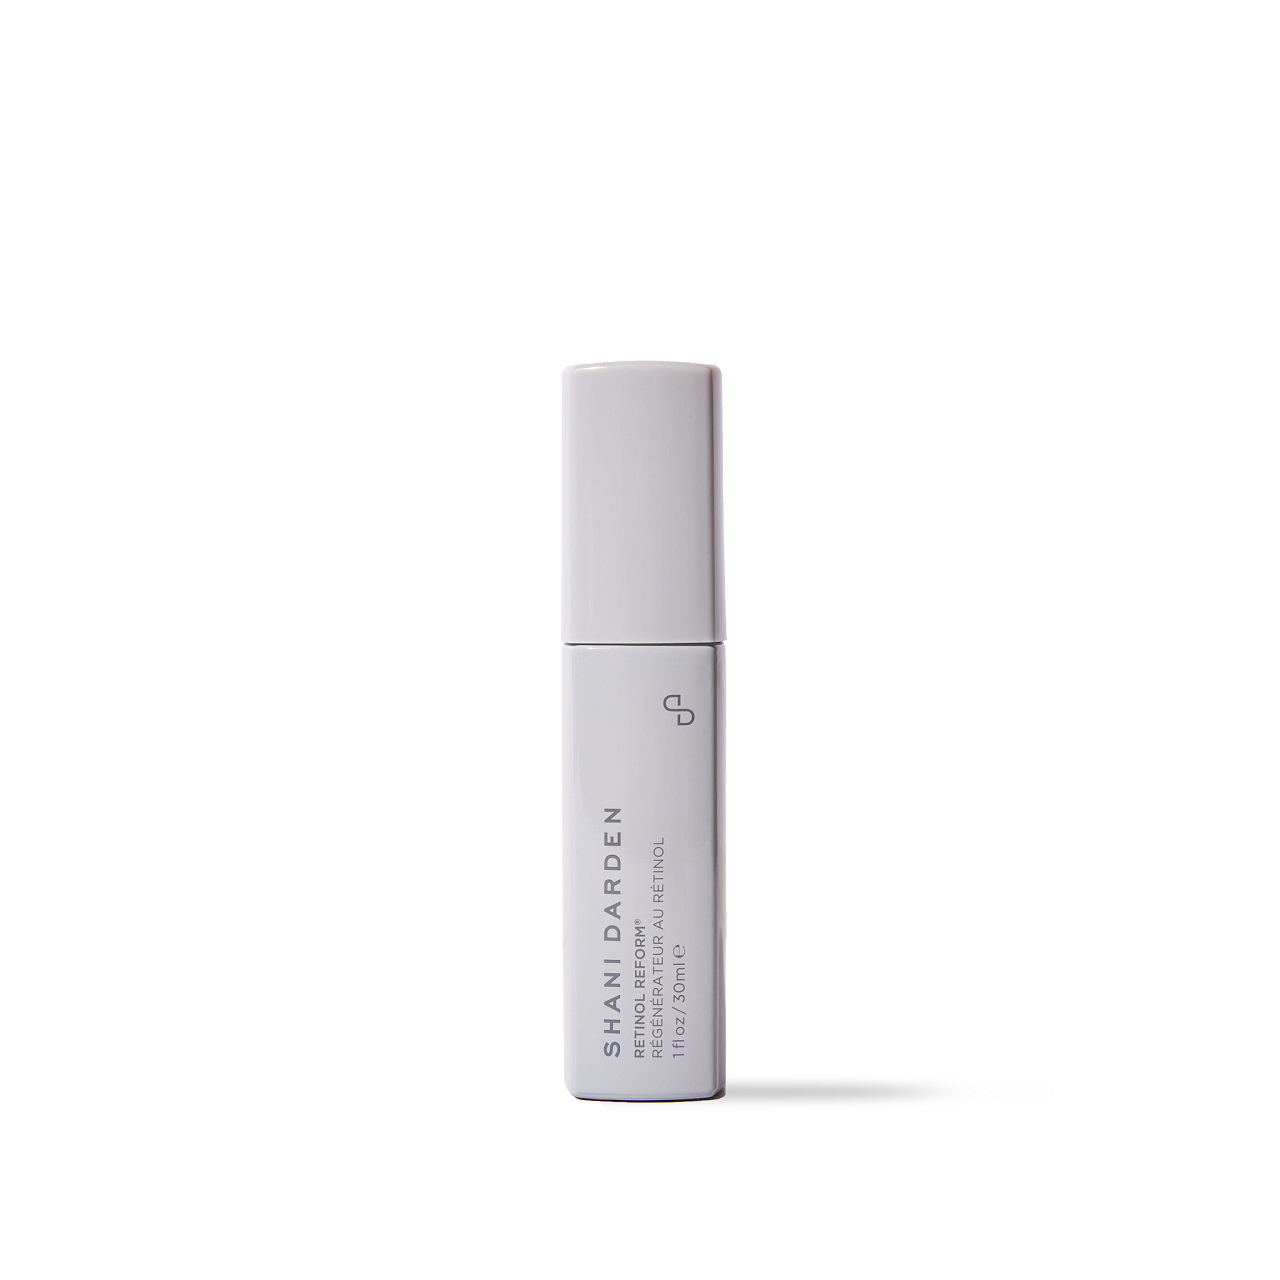 reSURFACE by Shani Darden - Retinol Reform